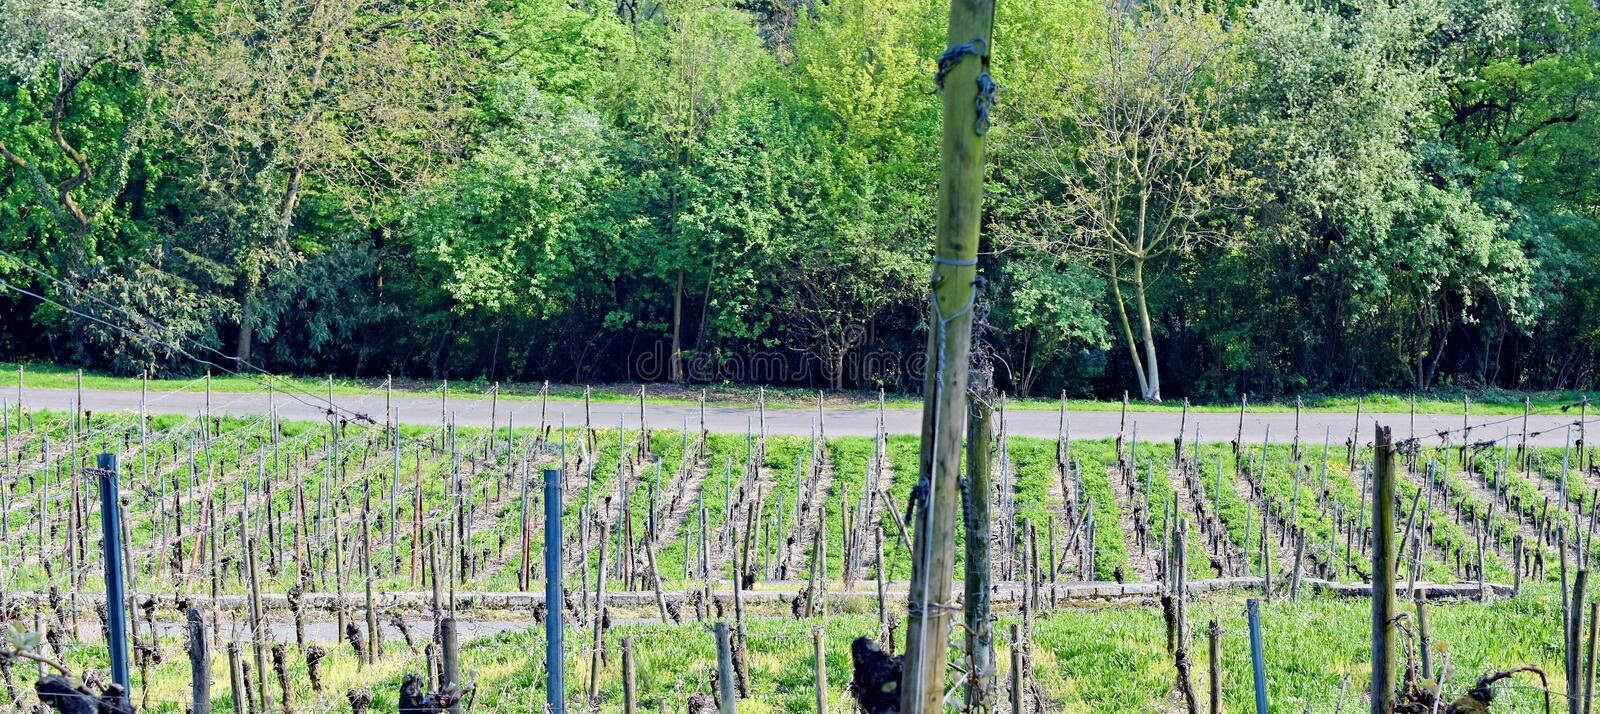 Panorama Vineyard Lohrberg, Frankfurt / Main, Germany. This photograph shows a vindeyard in the foregrund. In the background are some bushes and trees. The stock image